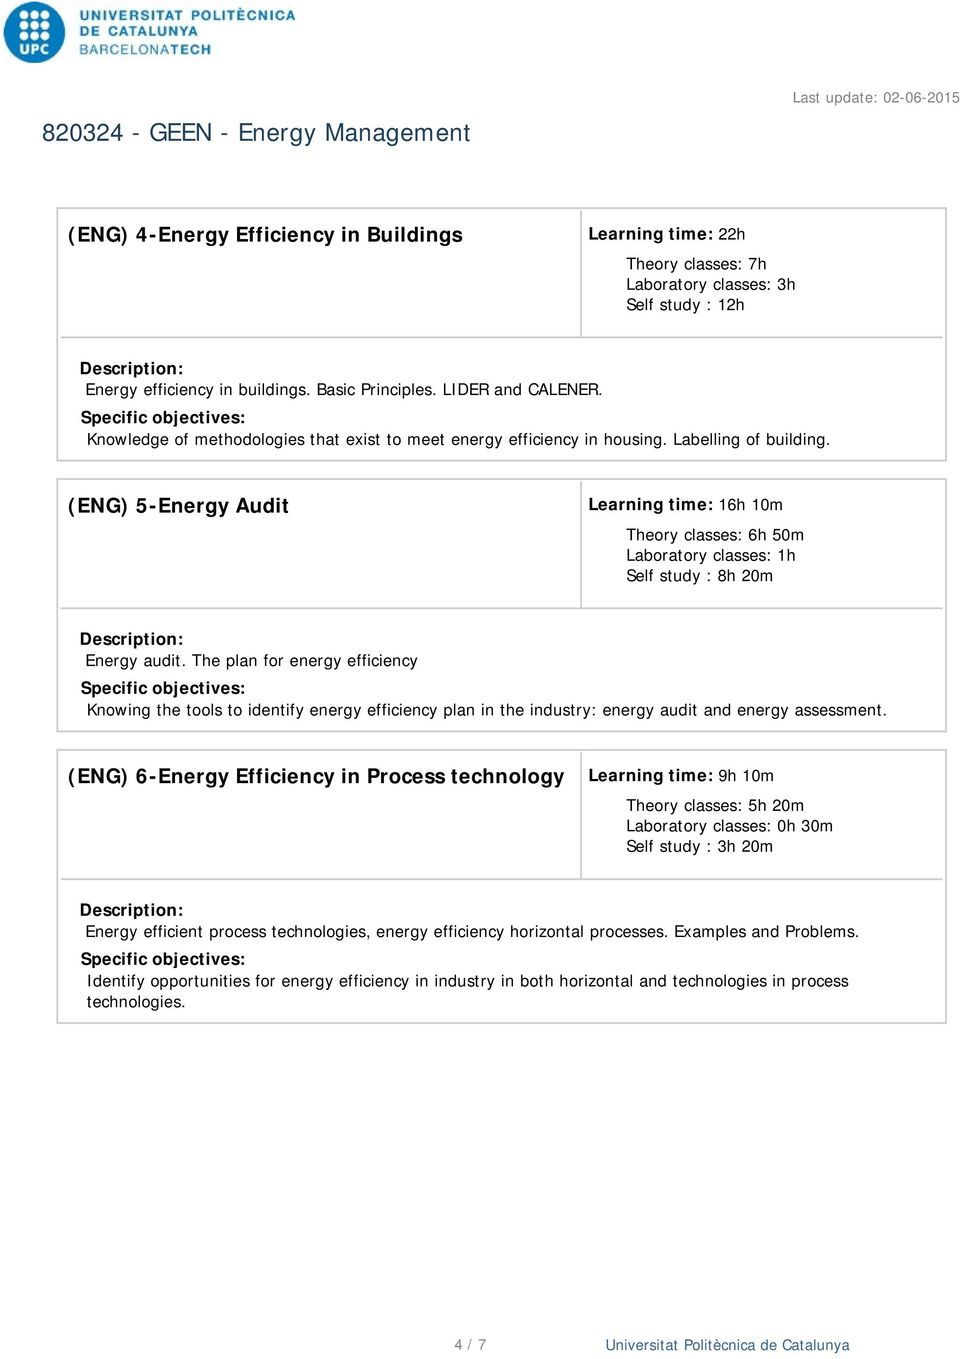 (ENG) 5-Energy Audit Learning time: 16h 10m Theory classes: 6h 50m Laboratory classes: 1h Self study : 8h 20m Energy audit.